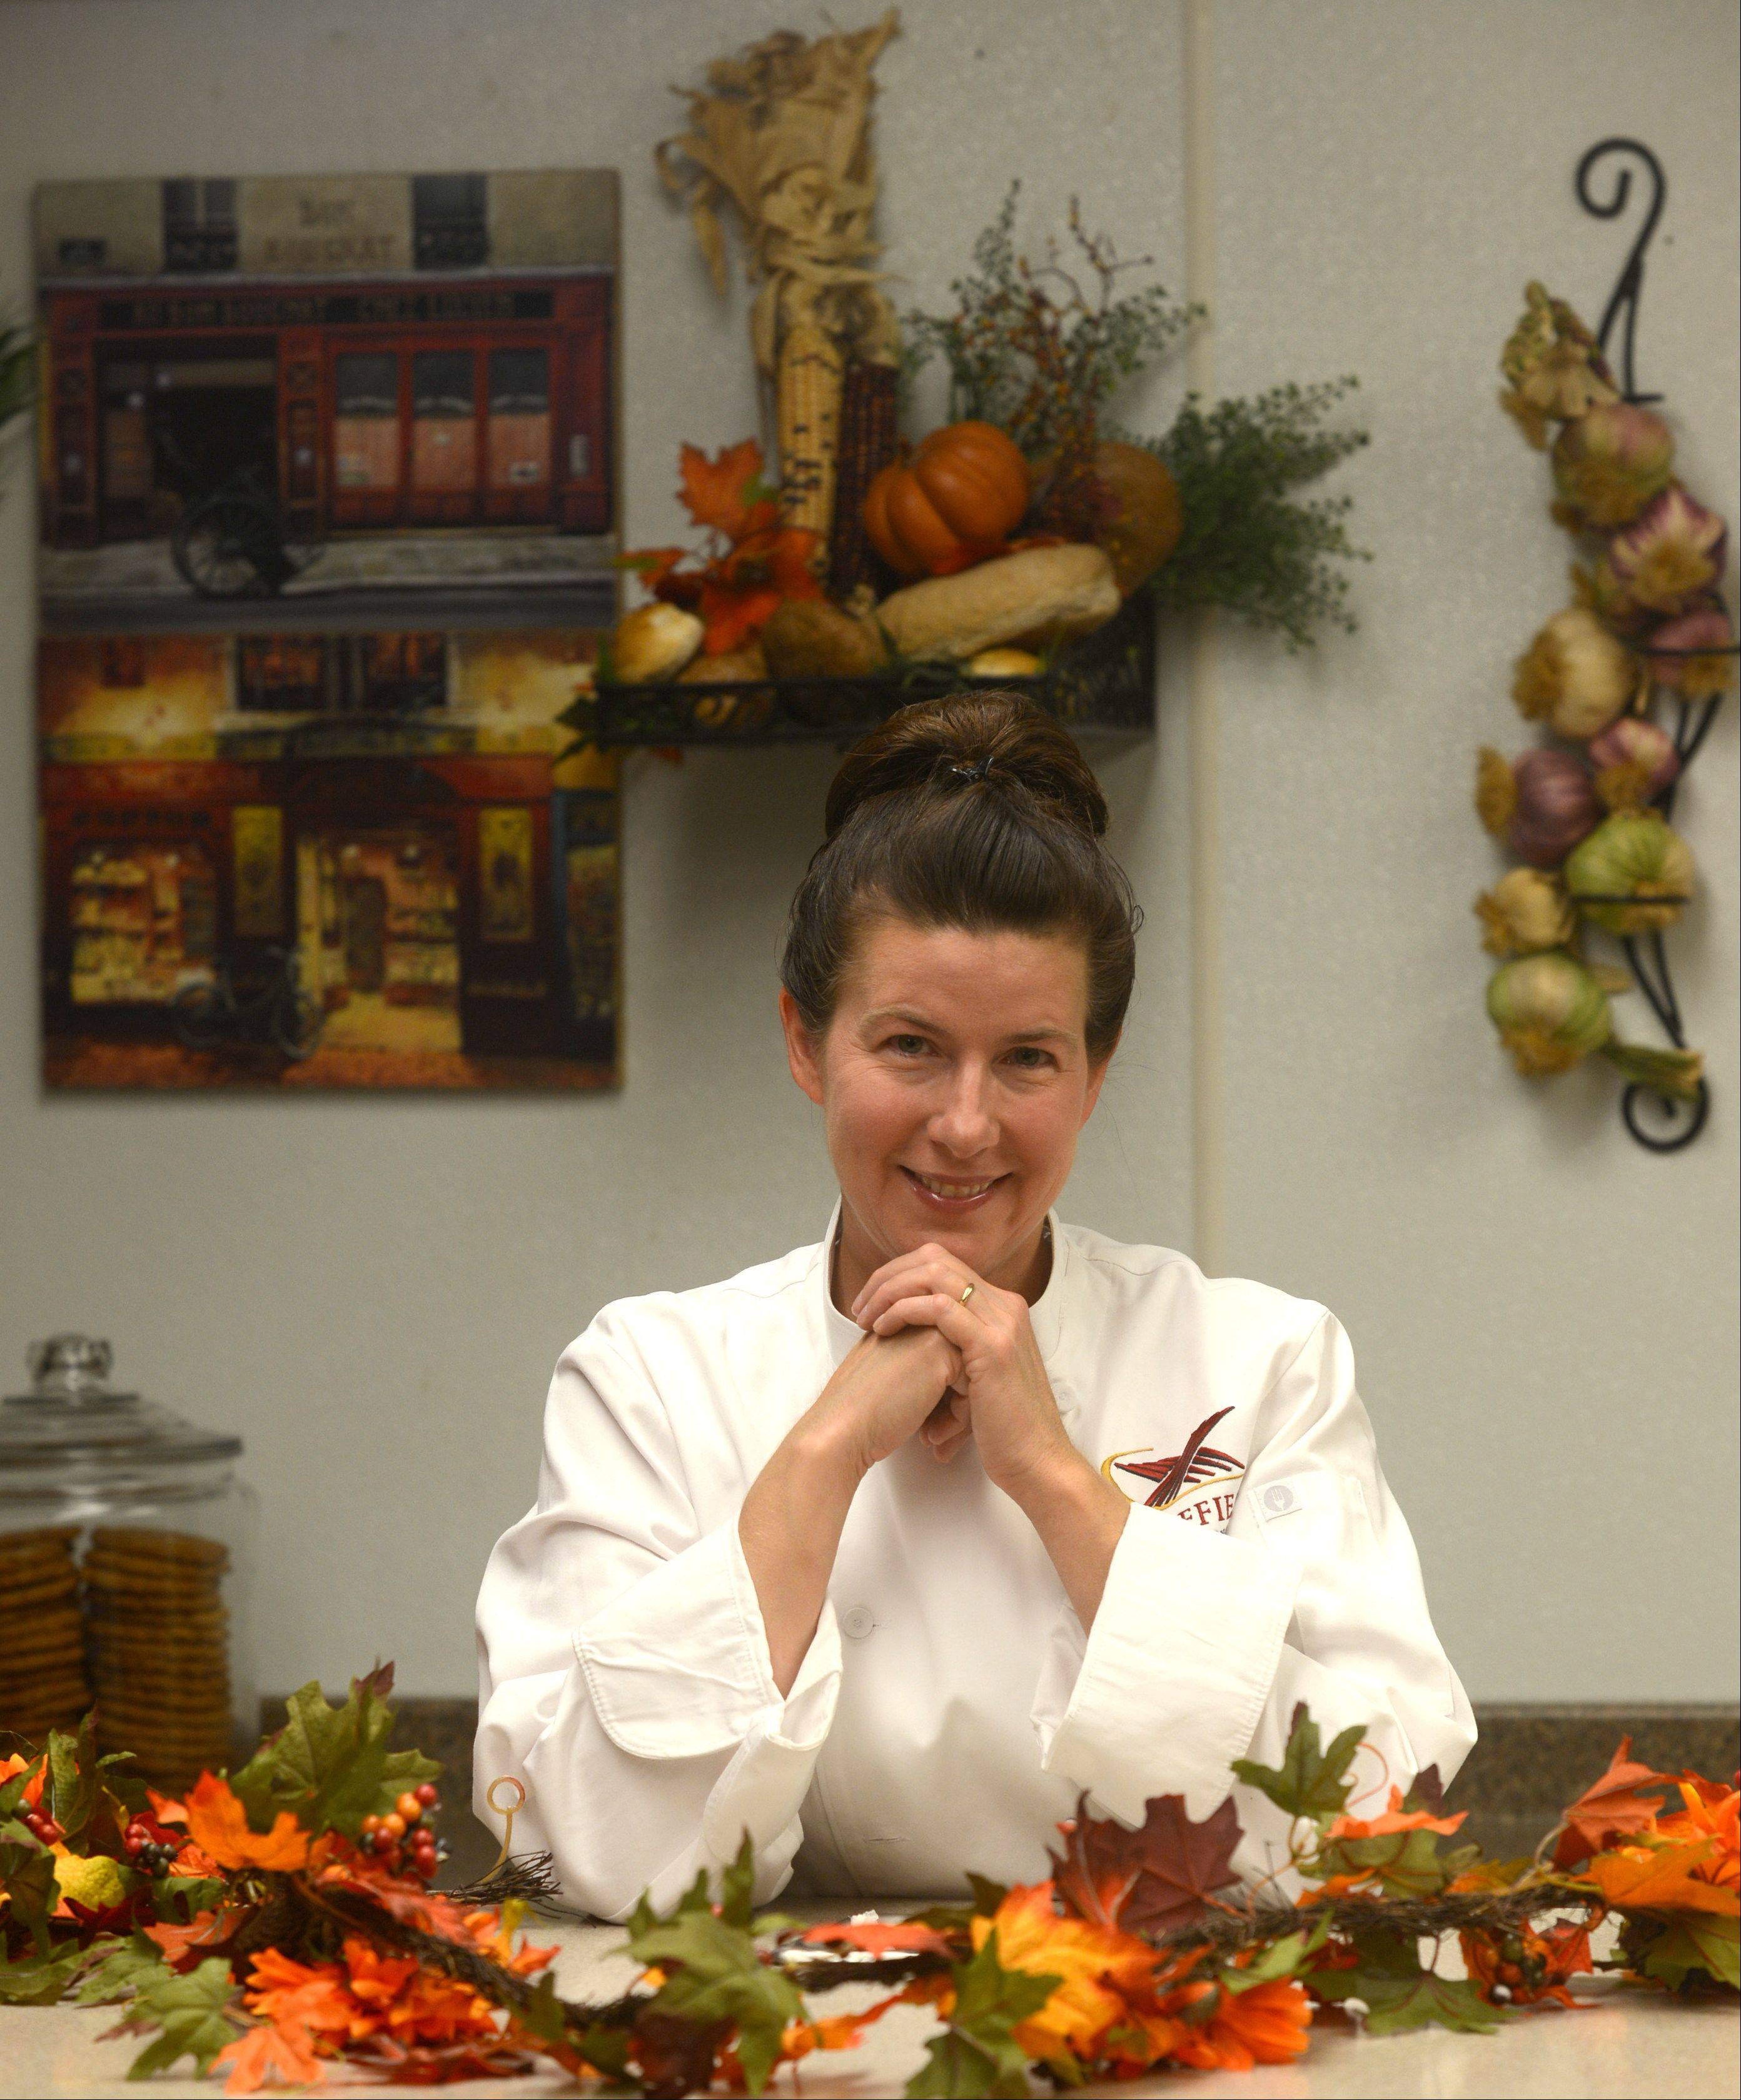 Chef Susie Wolak, a Lisle High School and College of DuPage graduate, teaches and advises aspiring pastry chefs through Escoffier Online Culinary Academy.